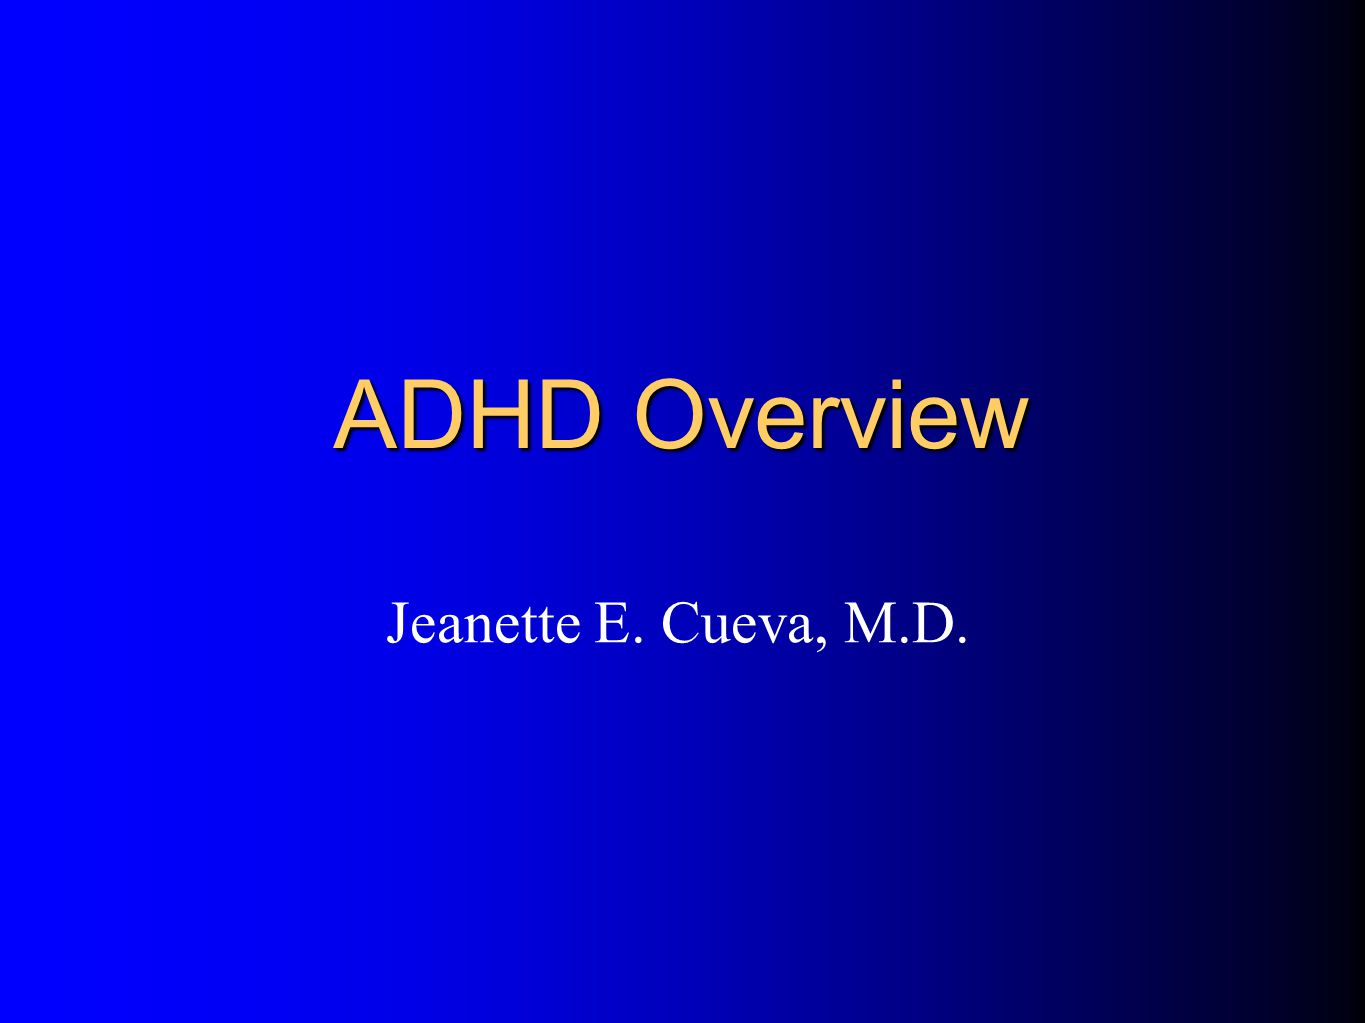 Rutters Indicators of Adversity and Risk for ADHD 0 1 2 3 4 5 13 4 Number of Rutter's Indicators Adjusted Odds Ratio 2 0 Gender, parental ADHD Maternal smoking during pregnancy